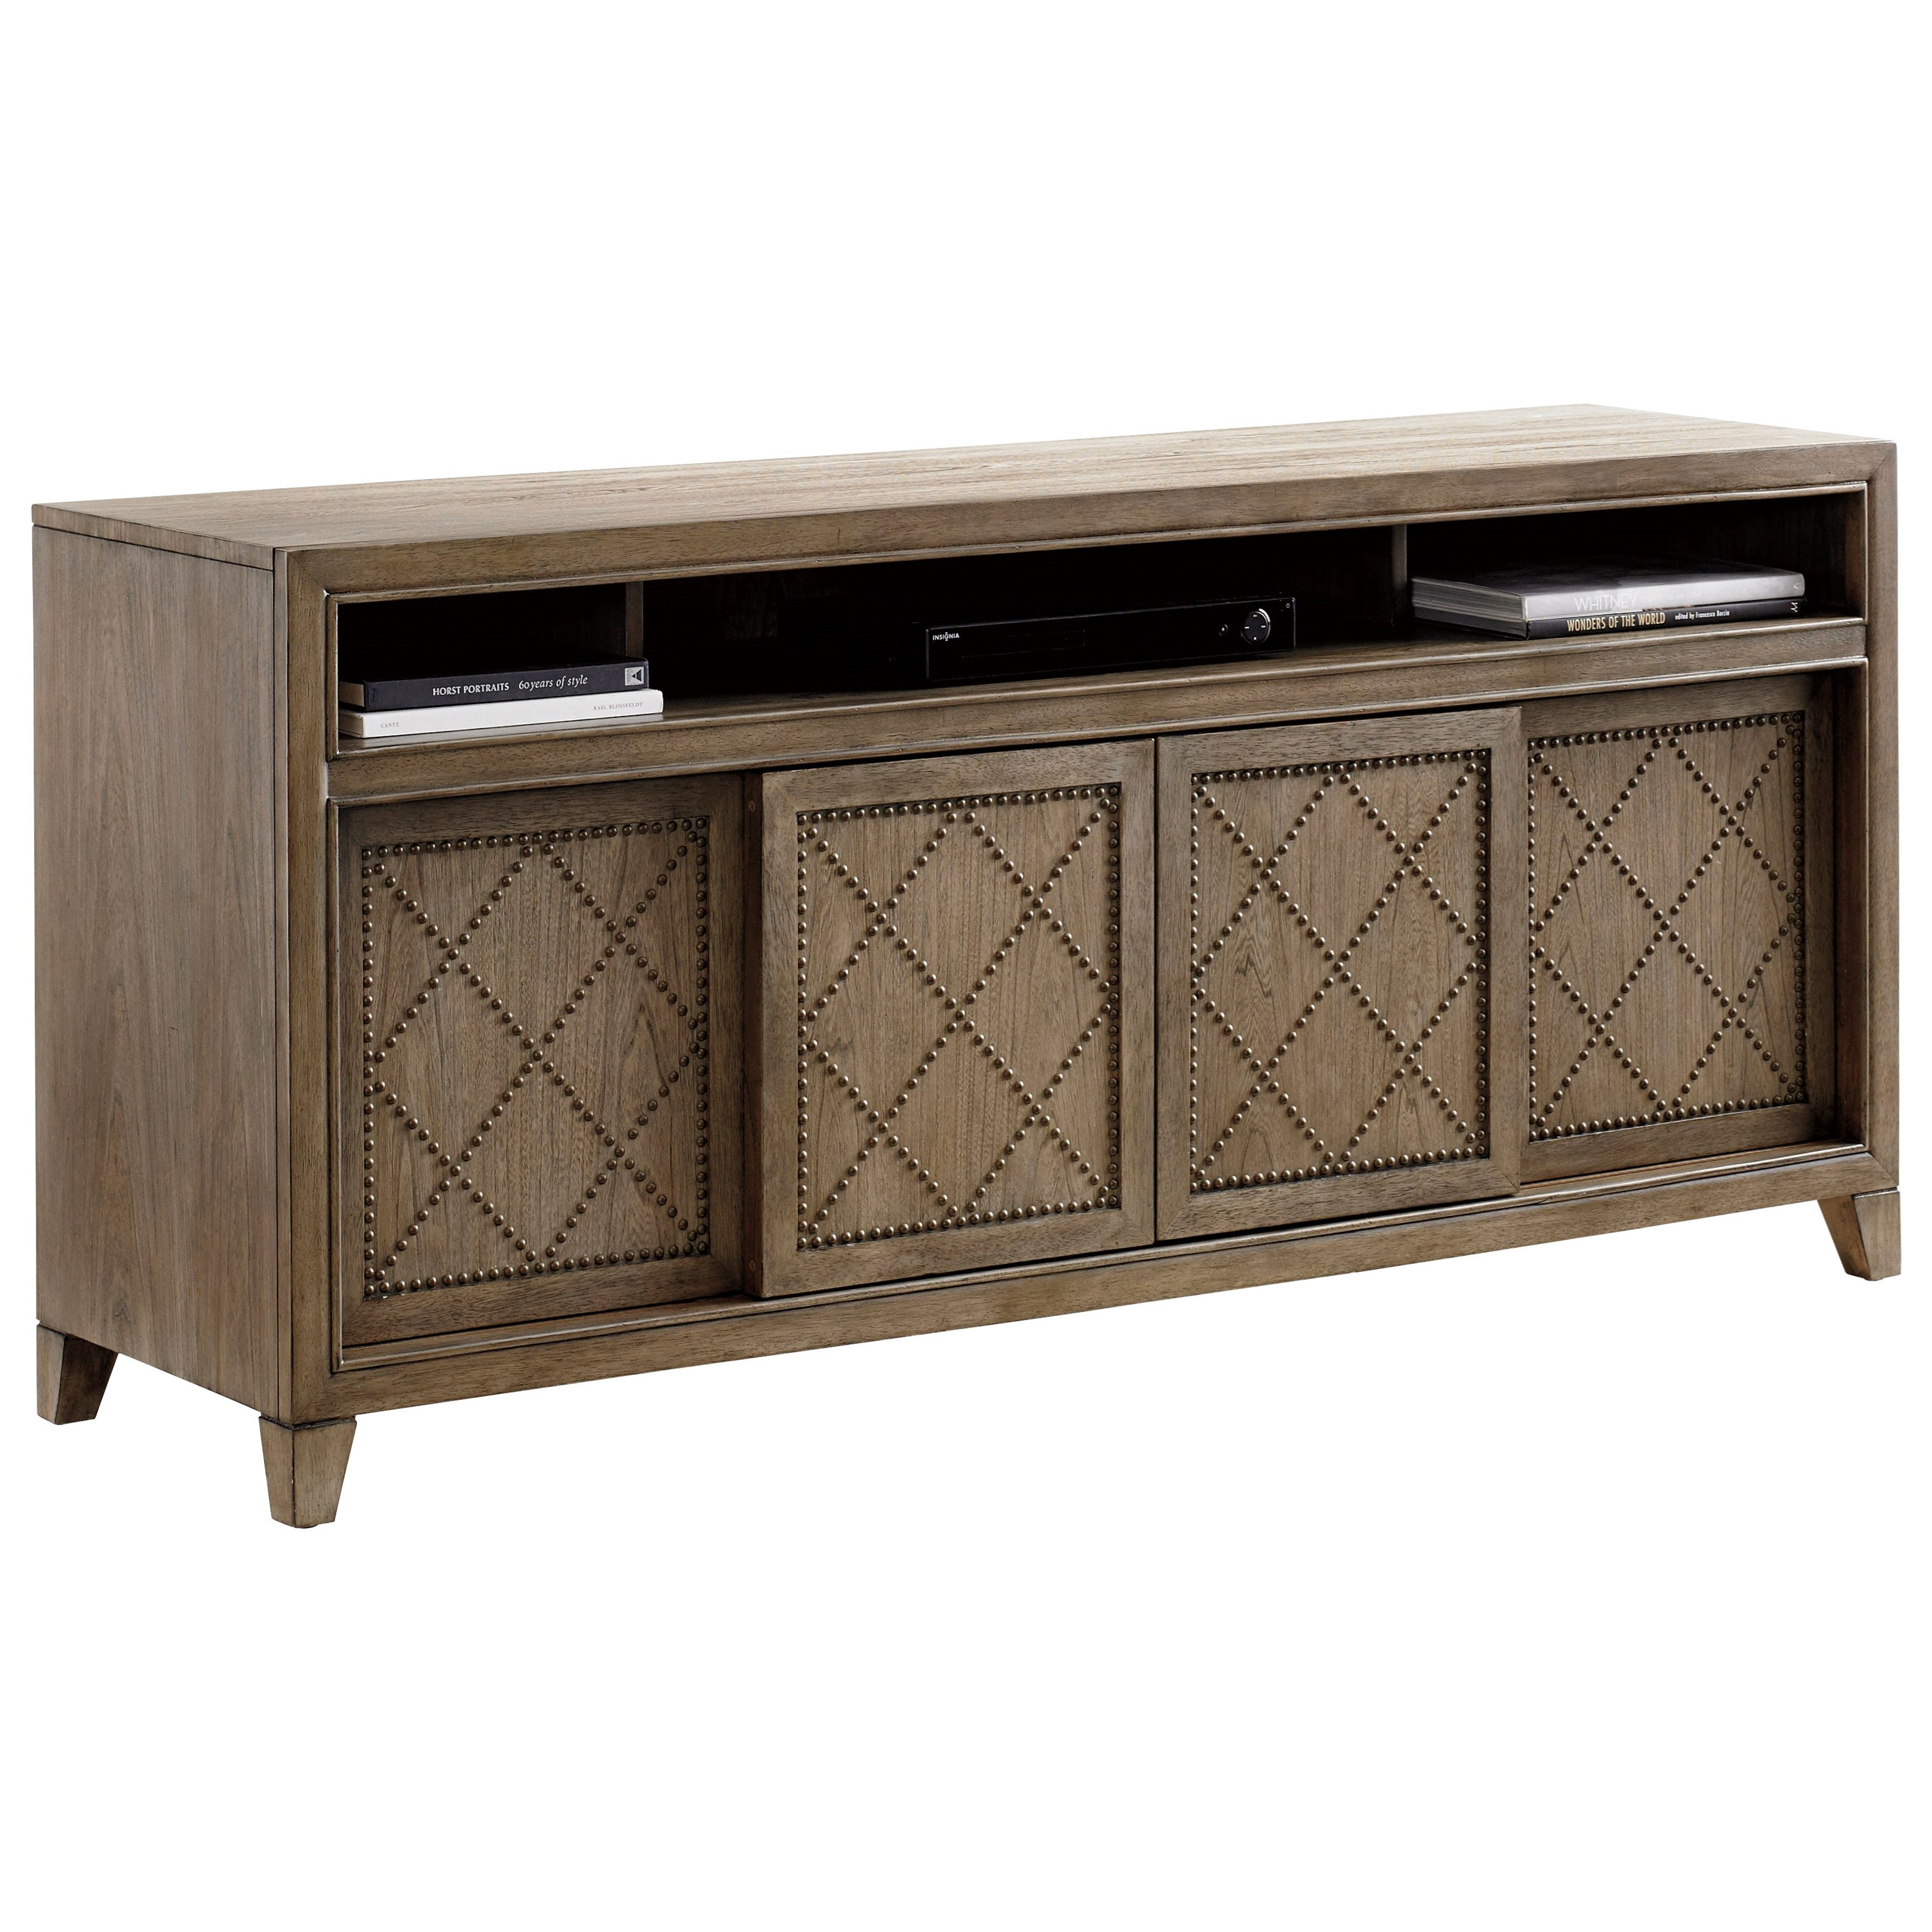 Tommy Bahama Home Cypress Point Fairbanks Media Console - Item Number: 561-907